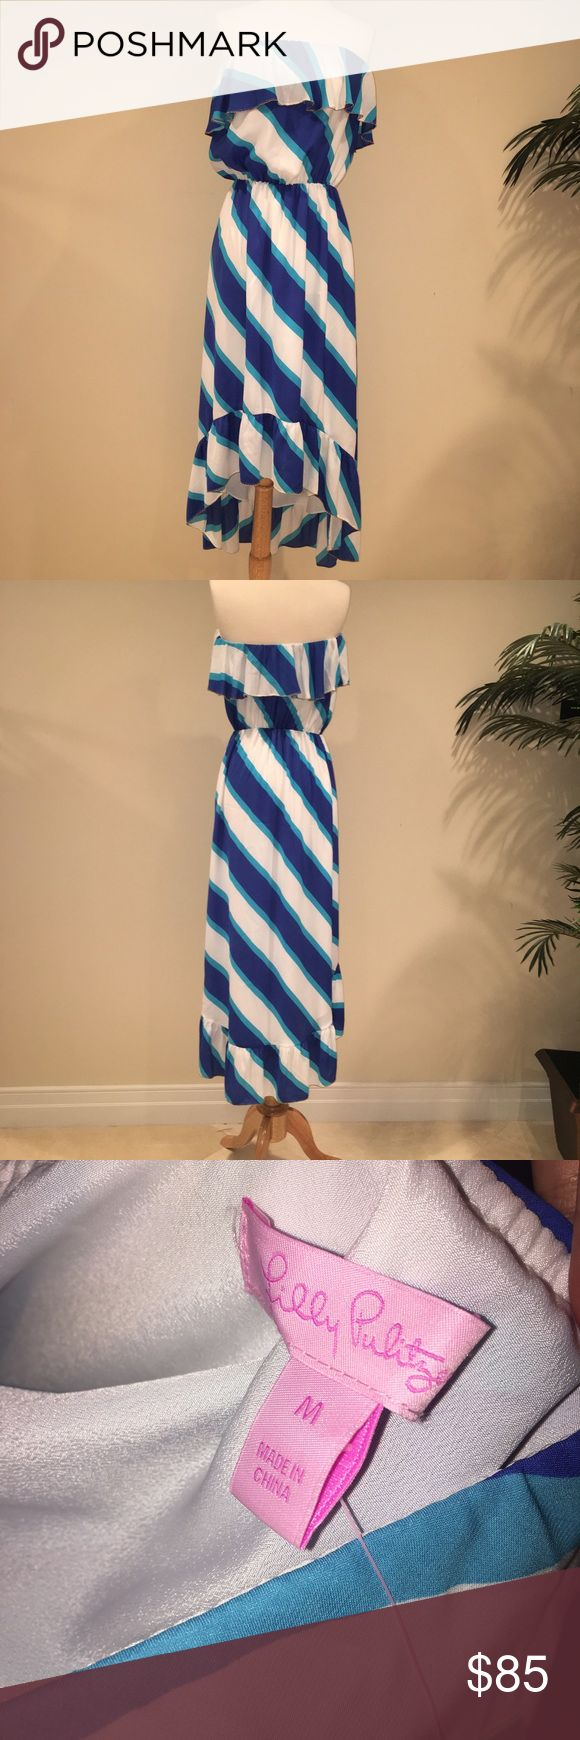 🌸New Lilly Pulitzer spring maxi dress New Lilly Pulitzer spring maxi hi-low dress w gold trim. Excellent condition, never worn! Lilly Pulitzer Dresses Maxi